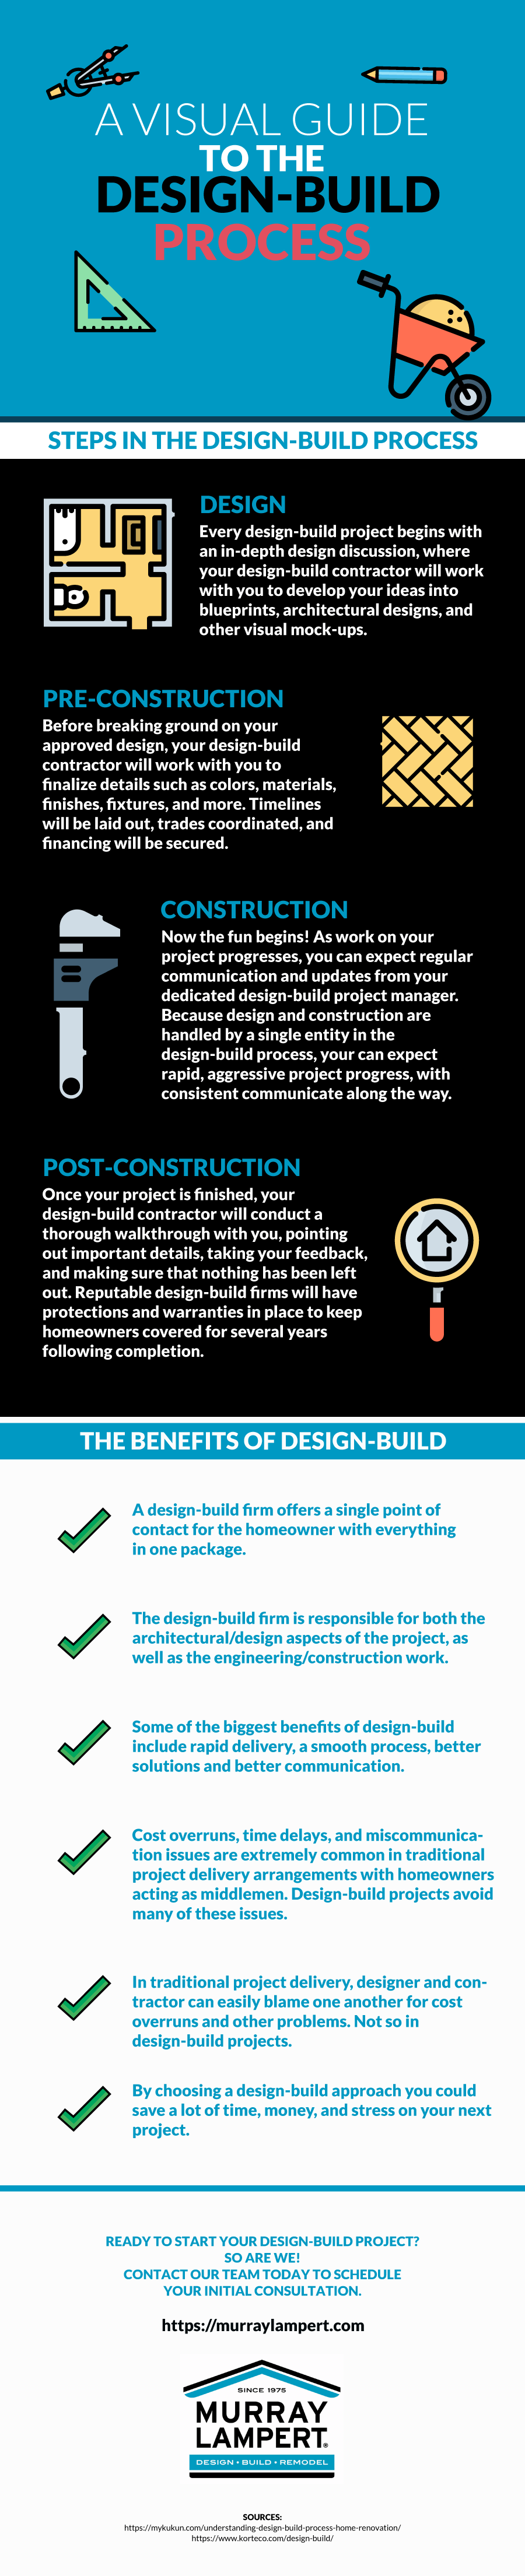 Visual Guide to the Design-Build Process Infographic